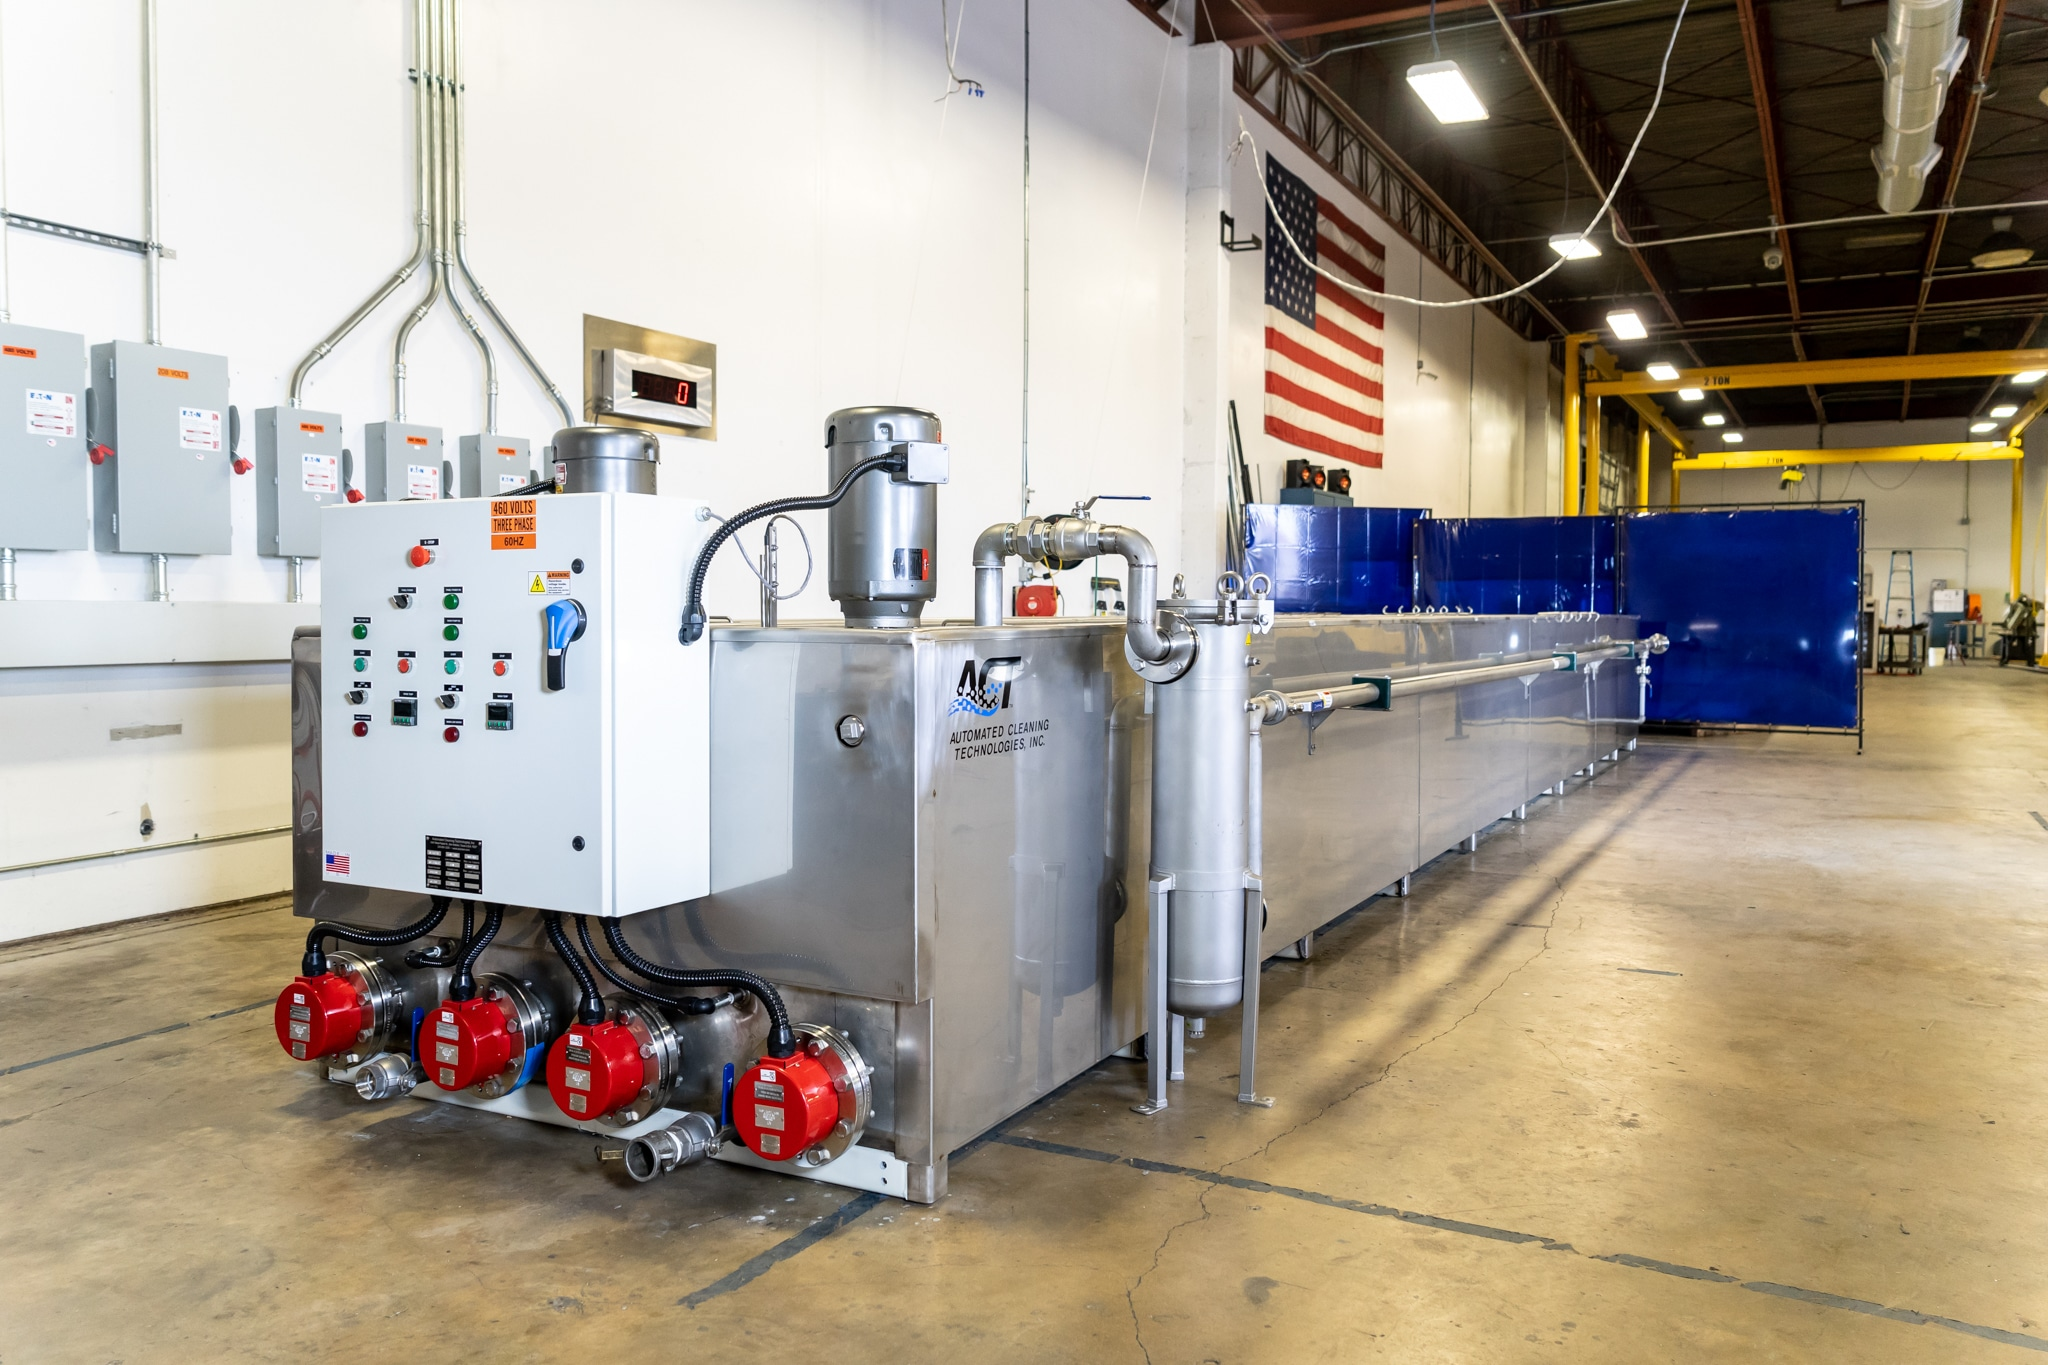 Stator Tube Processing System Automated Cleaning Technologies